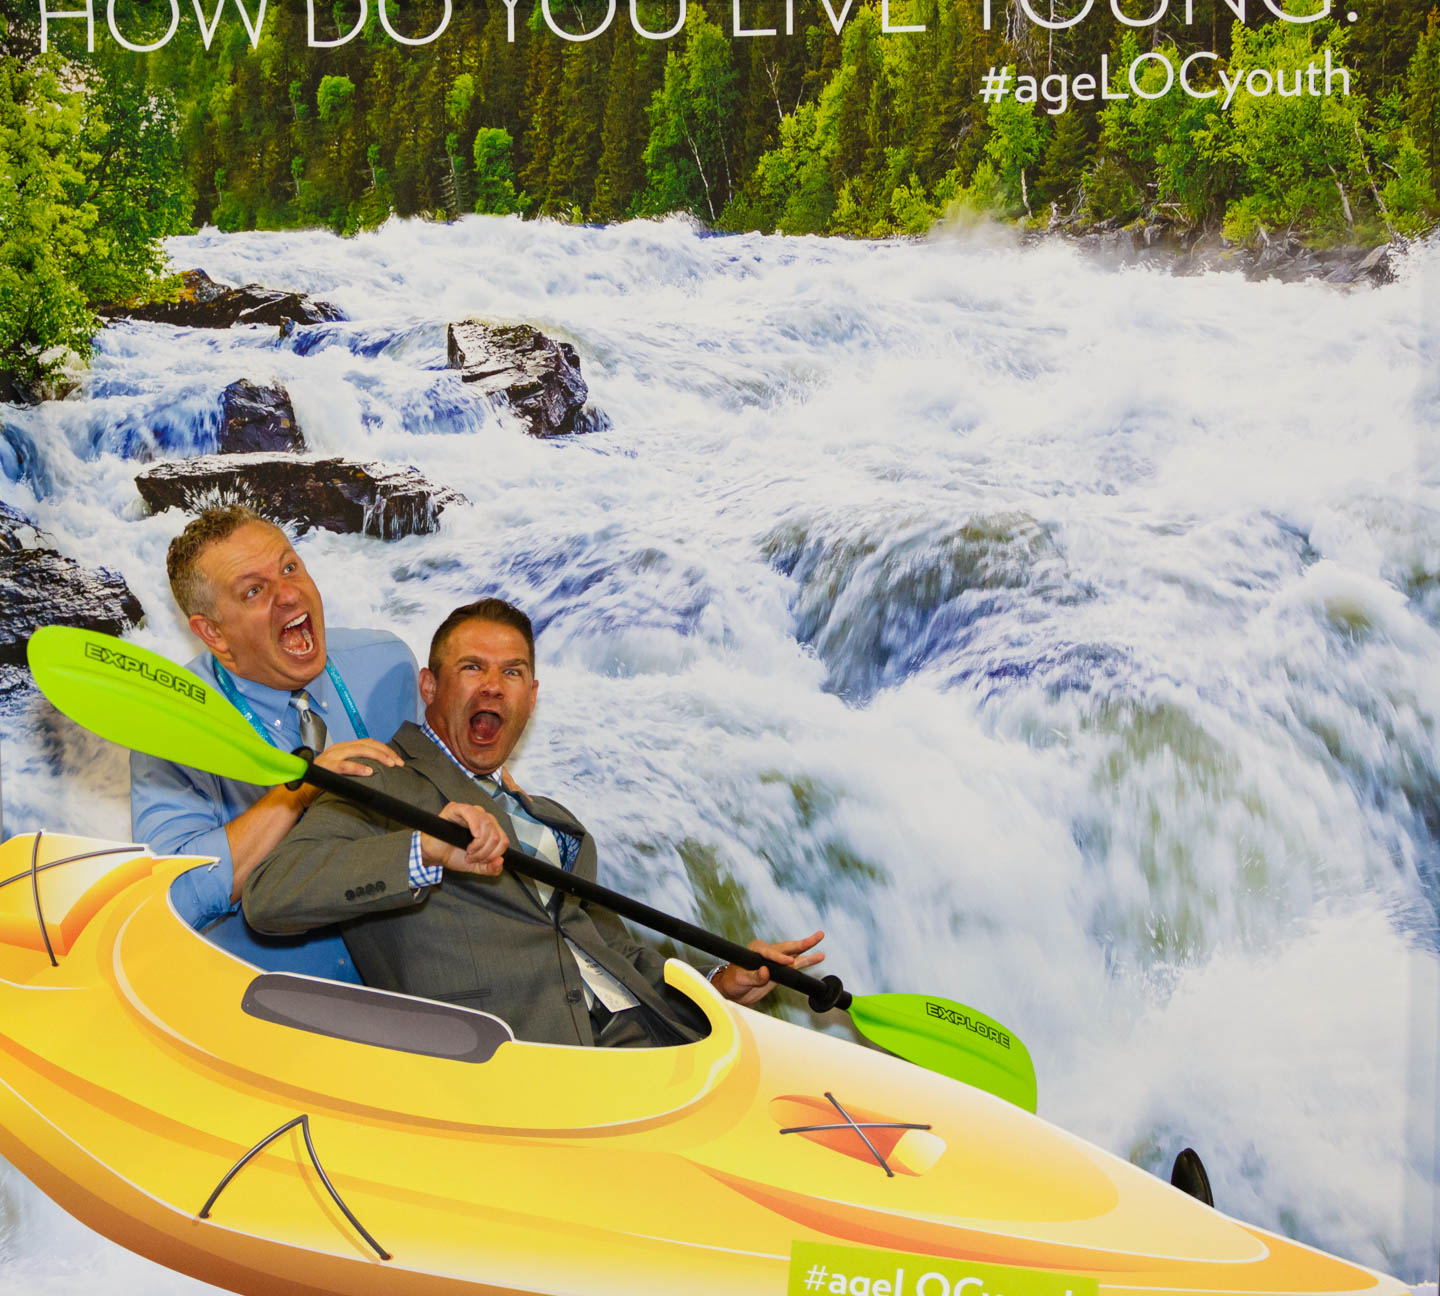 I'm in a kayak! This was one of the photo booths